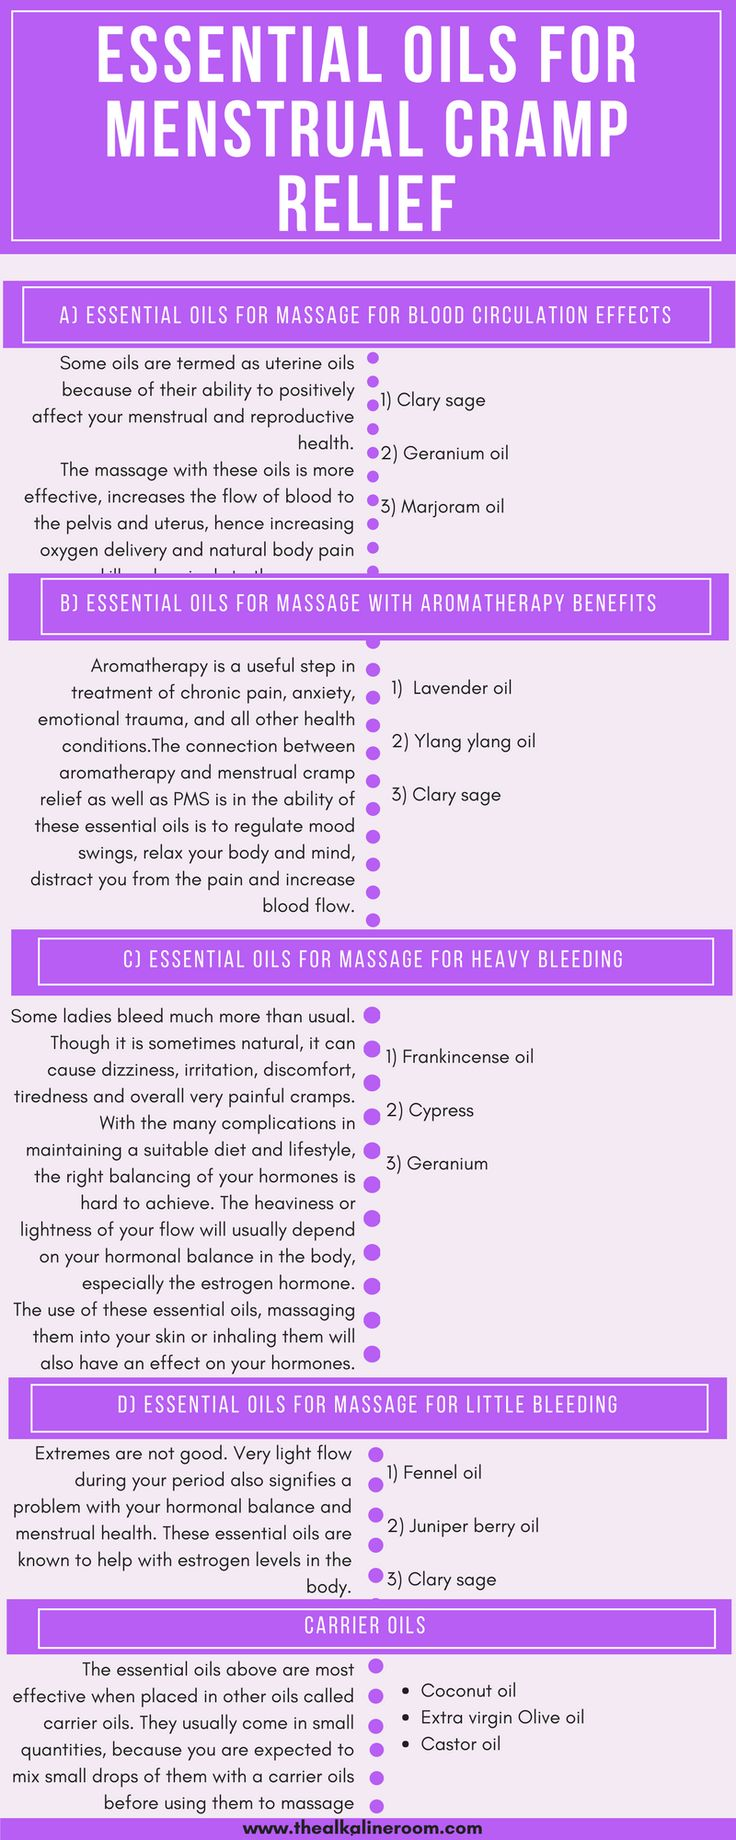 Essential Oils For Menstrual Cramp Relief